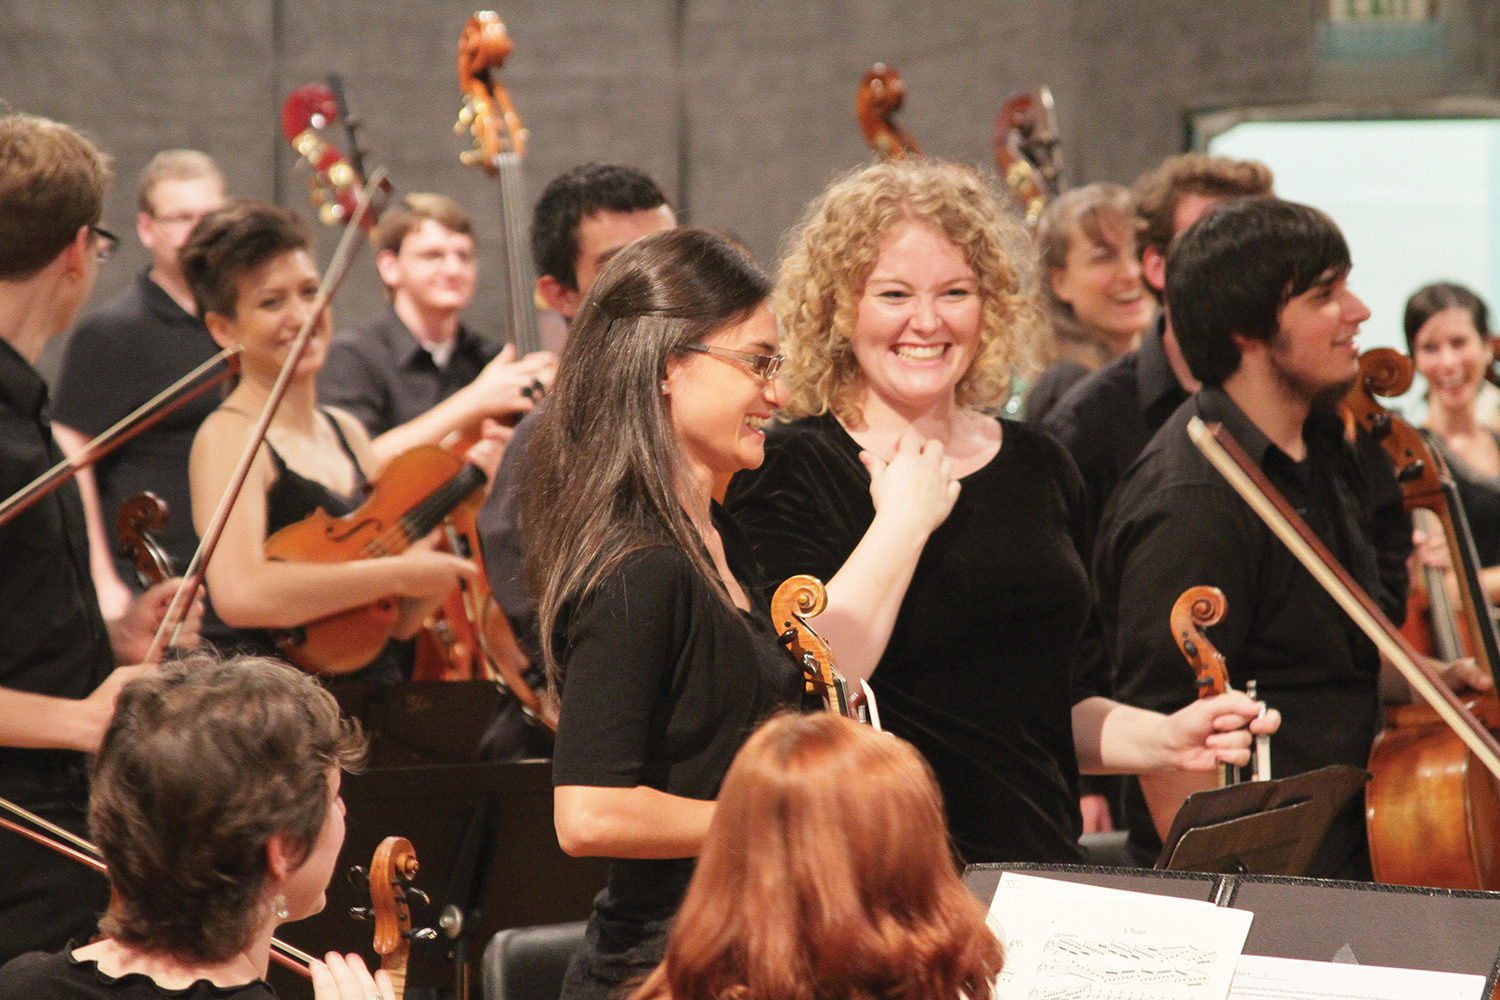 Violinists taking a bow after a performance.